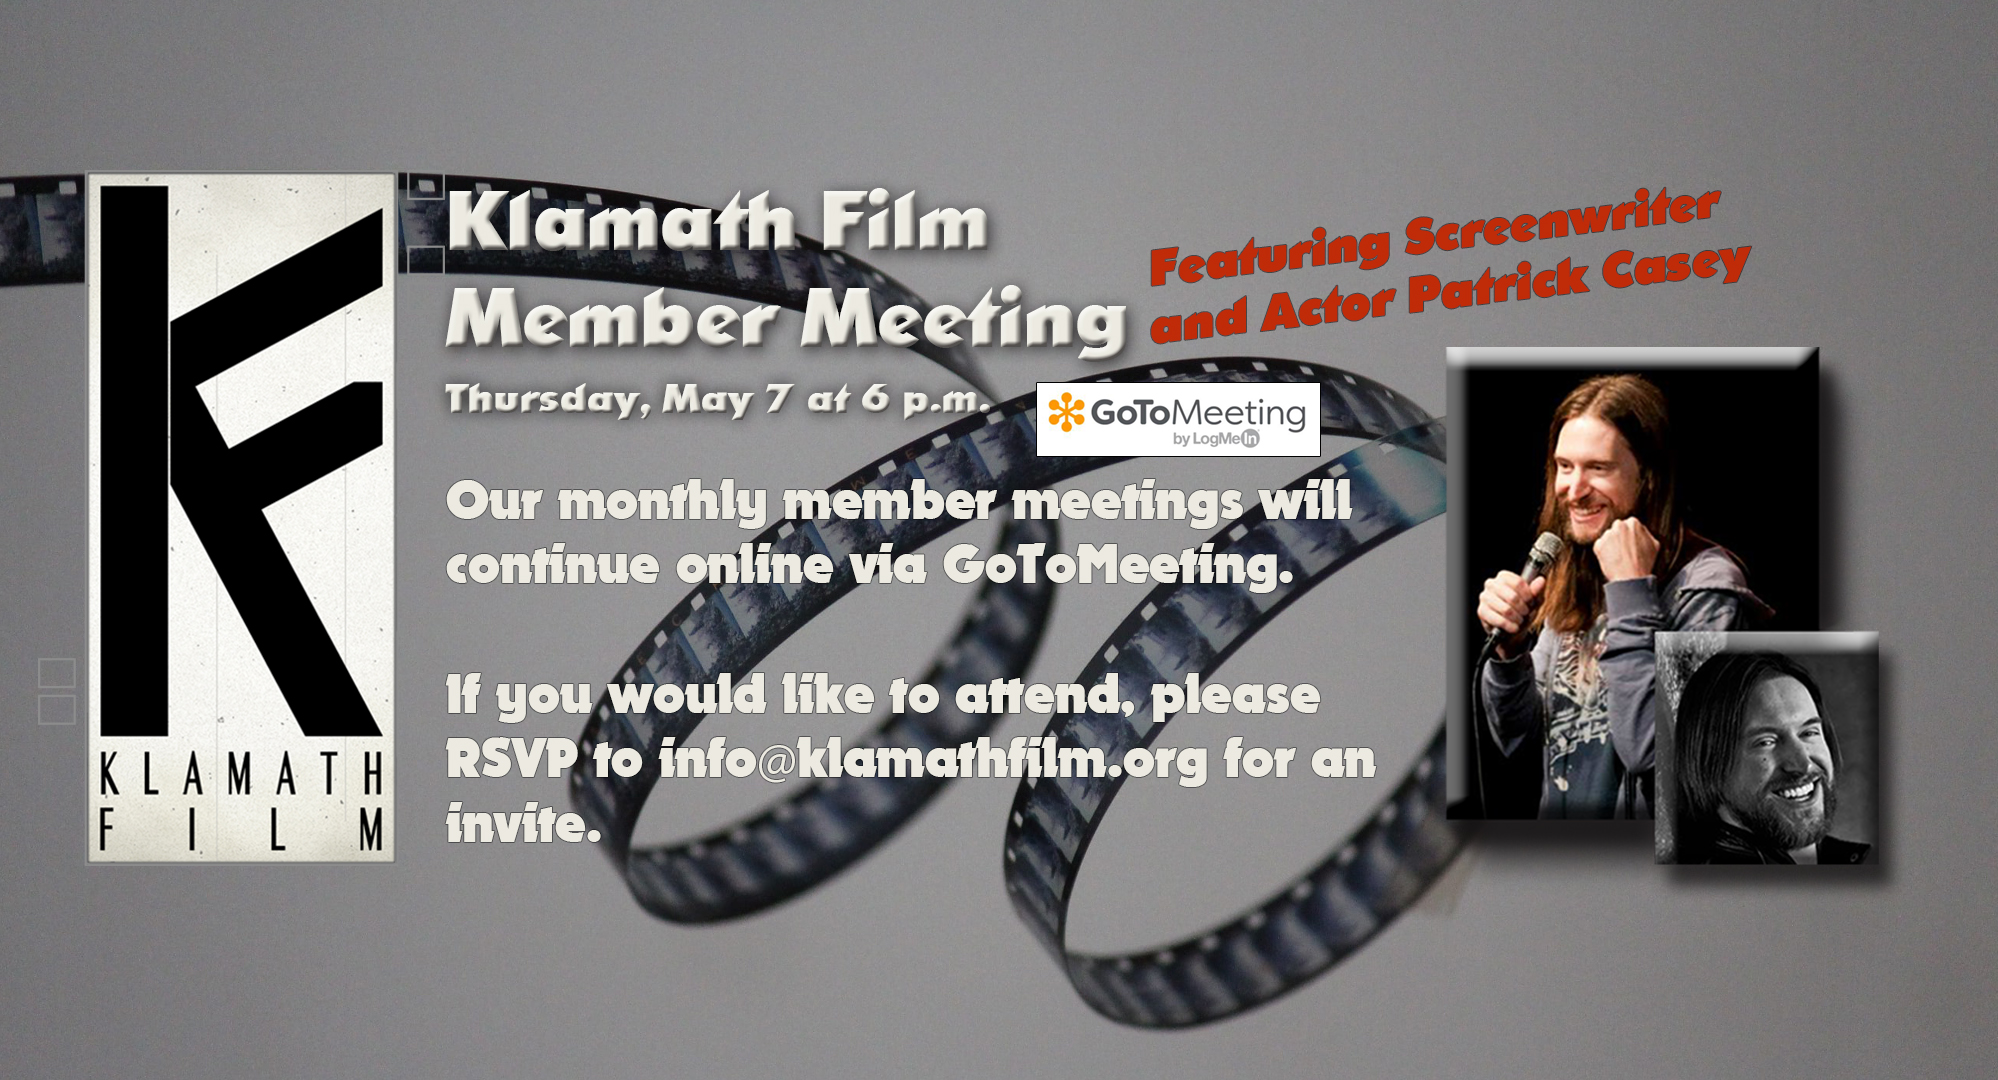 Klamath Film member meetings return in May